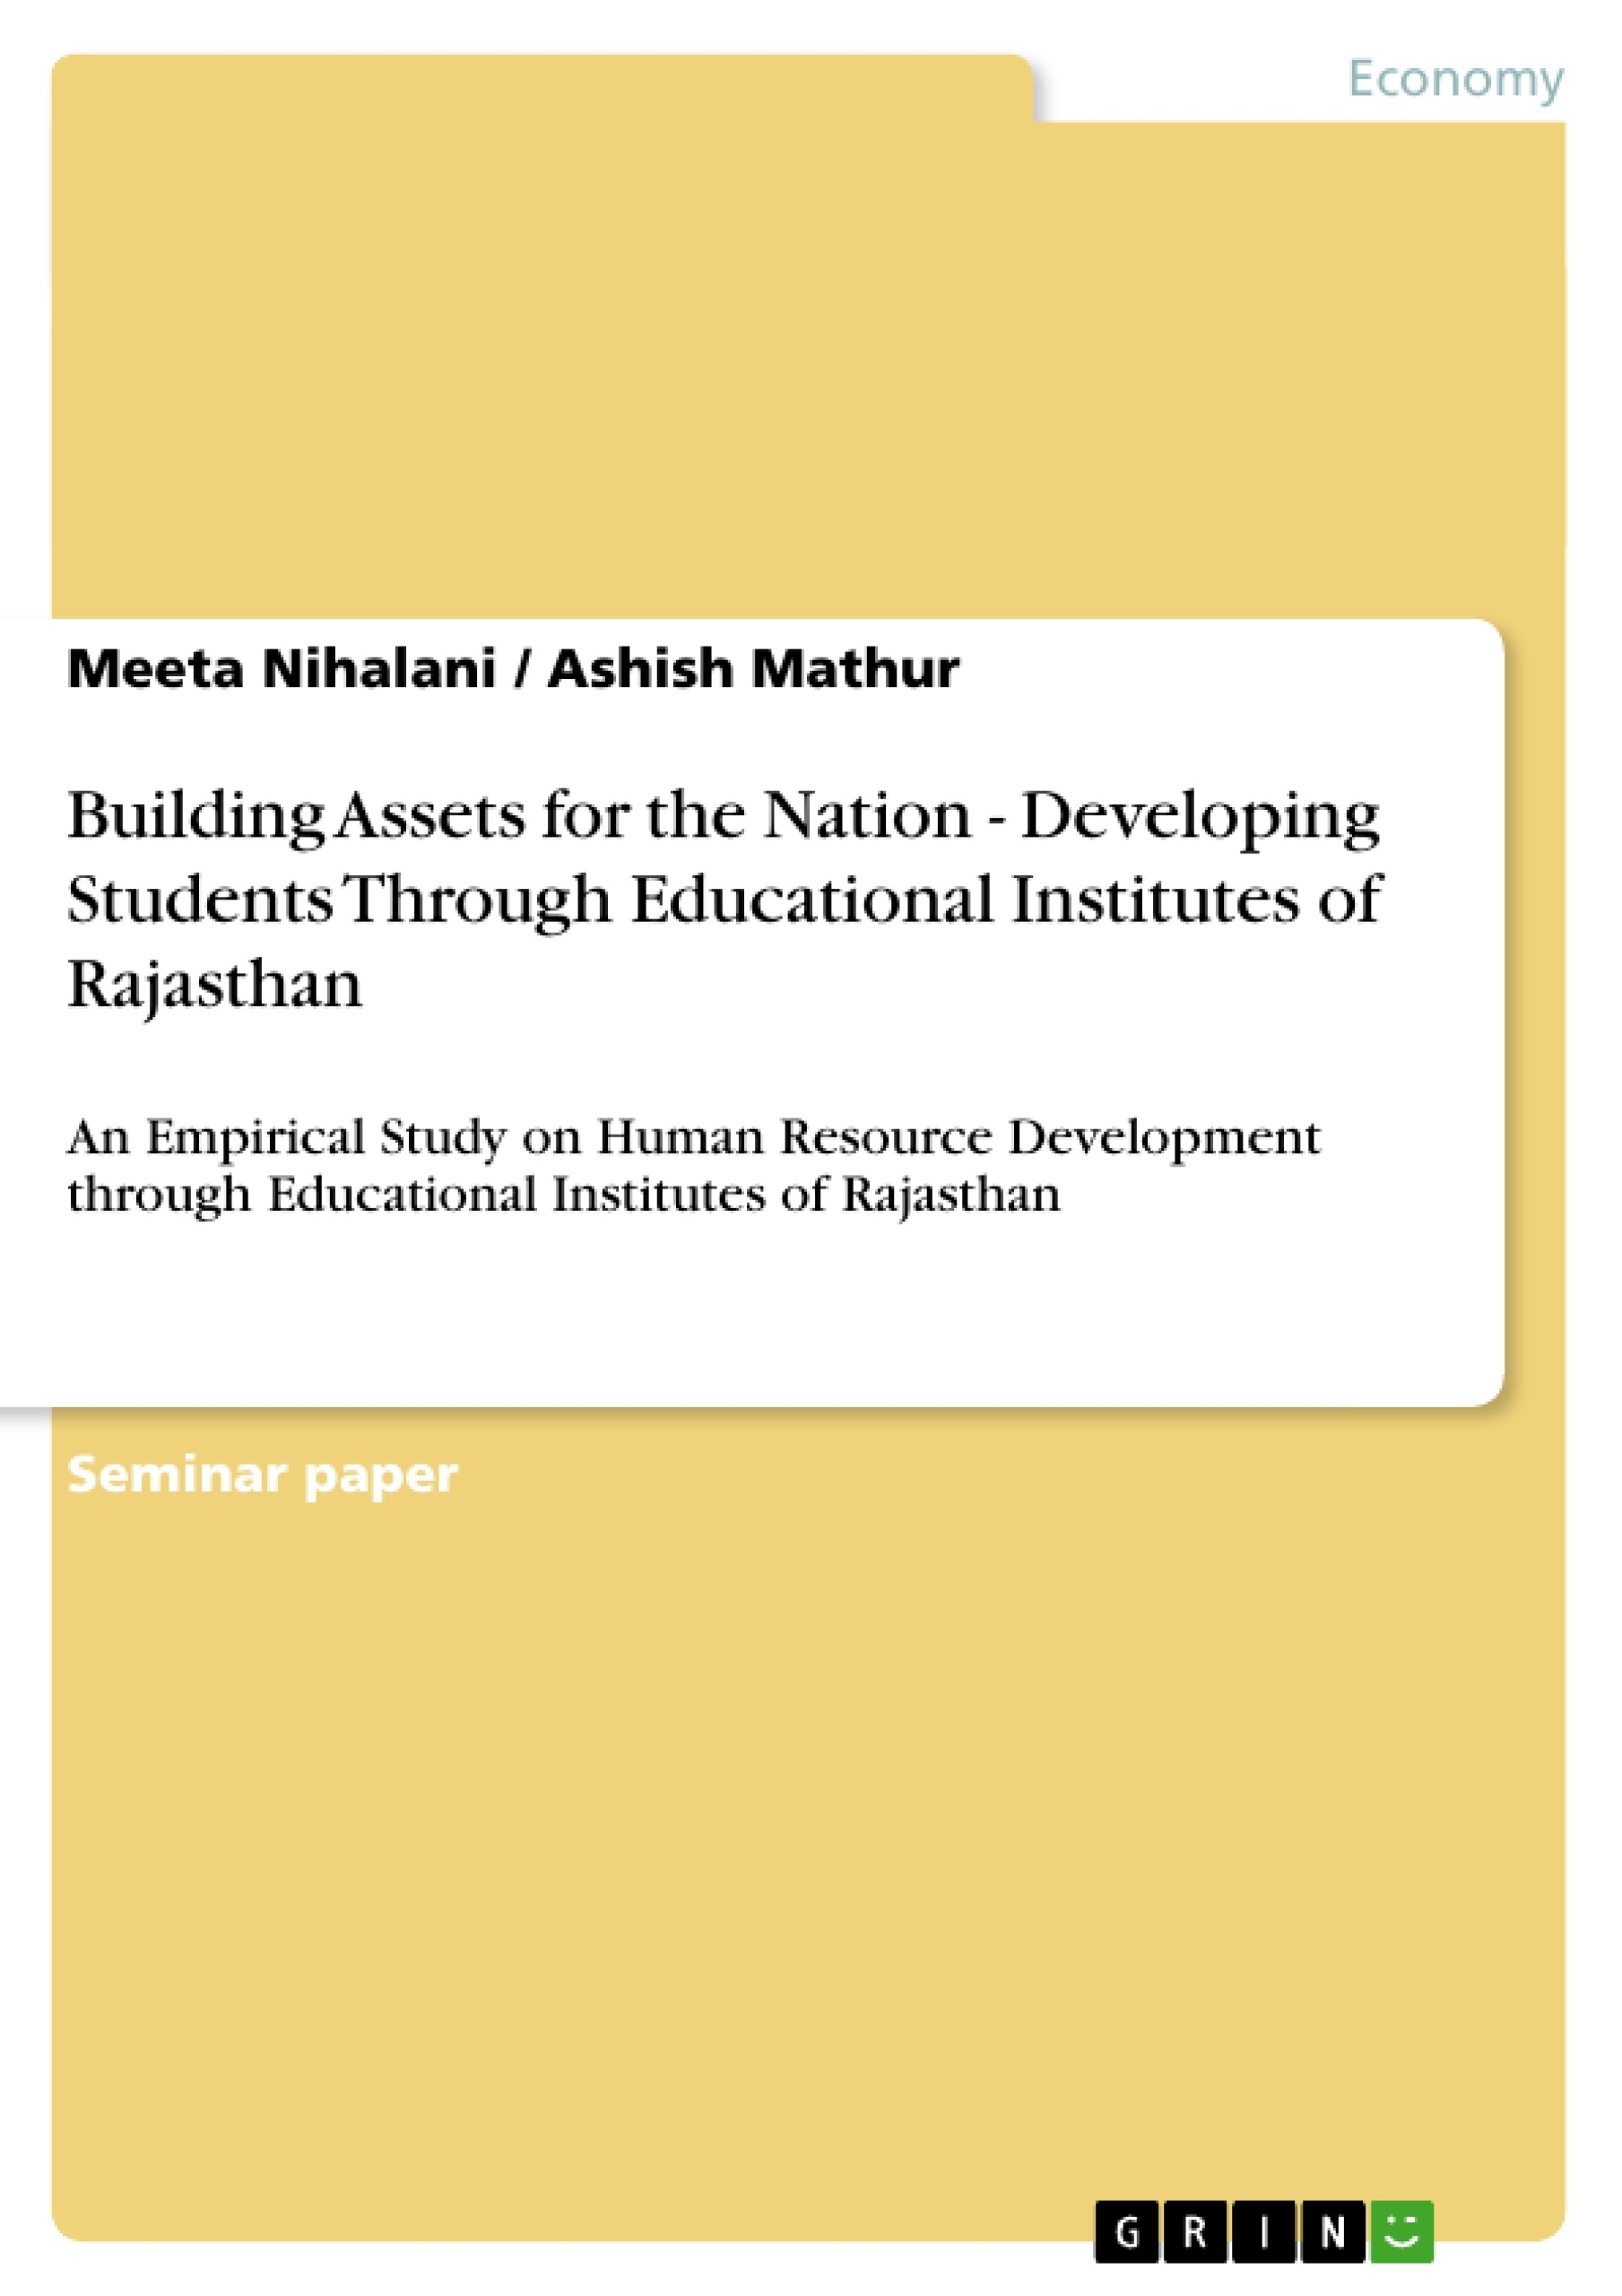 Title: Building  Assets for the Nation - Developing  Students Through Educational Institutes of Rajasthan